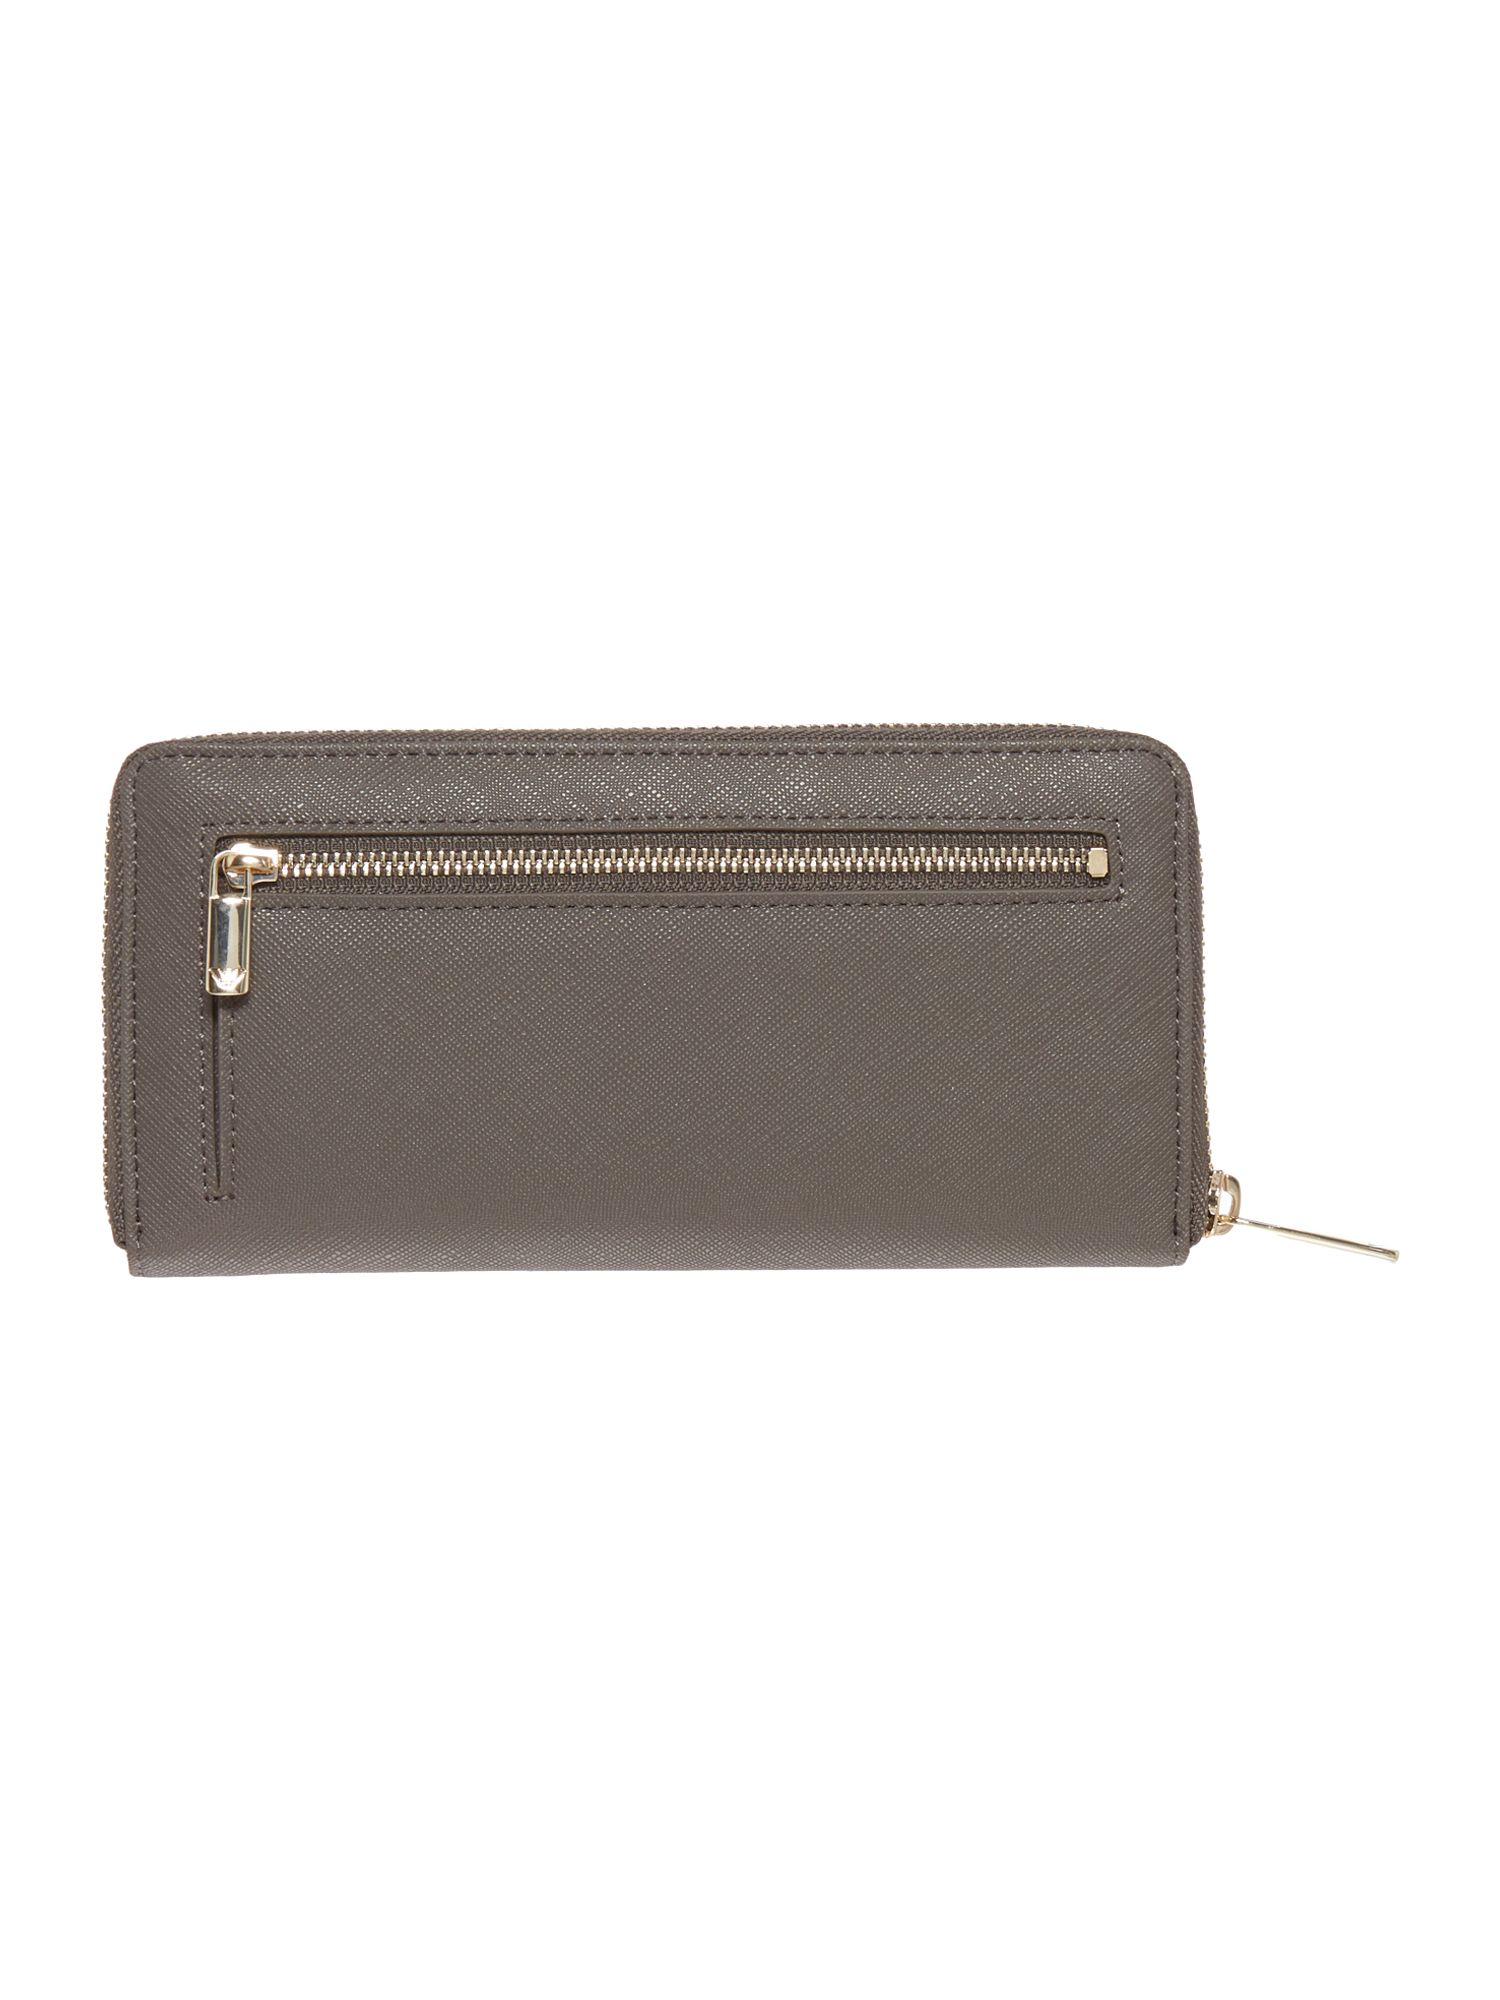 Armani Jeans Purse House Of Fraser - Jeans Frenchafricana.Org 2018 7d571b5d6adb3